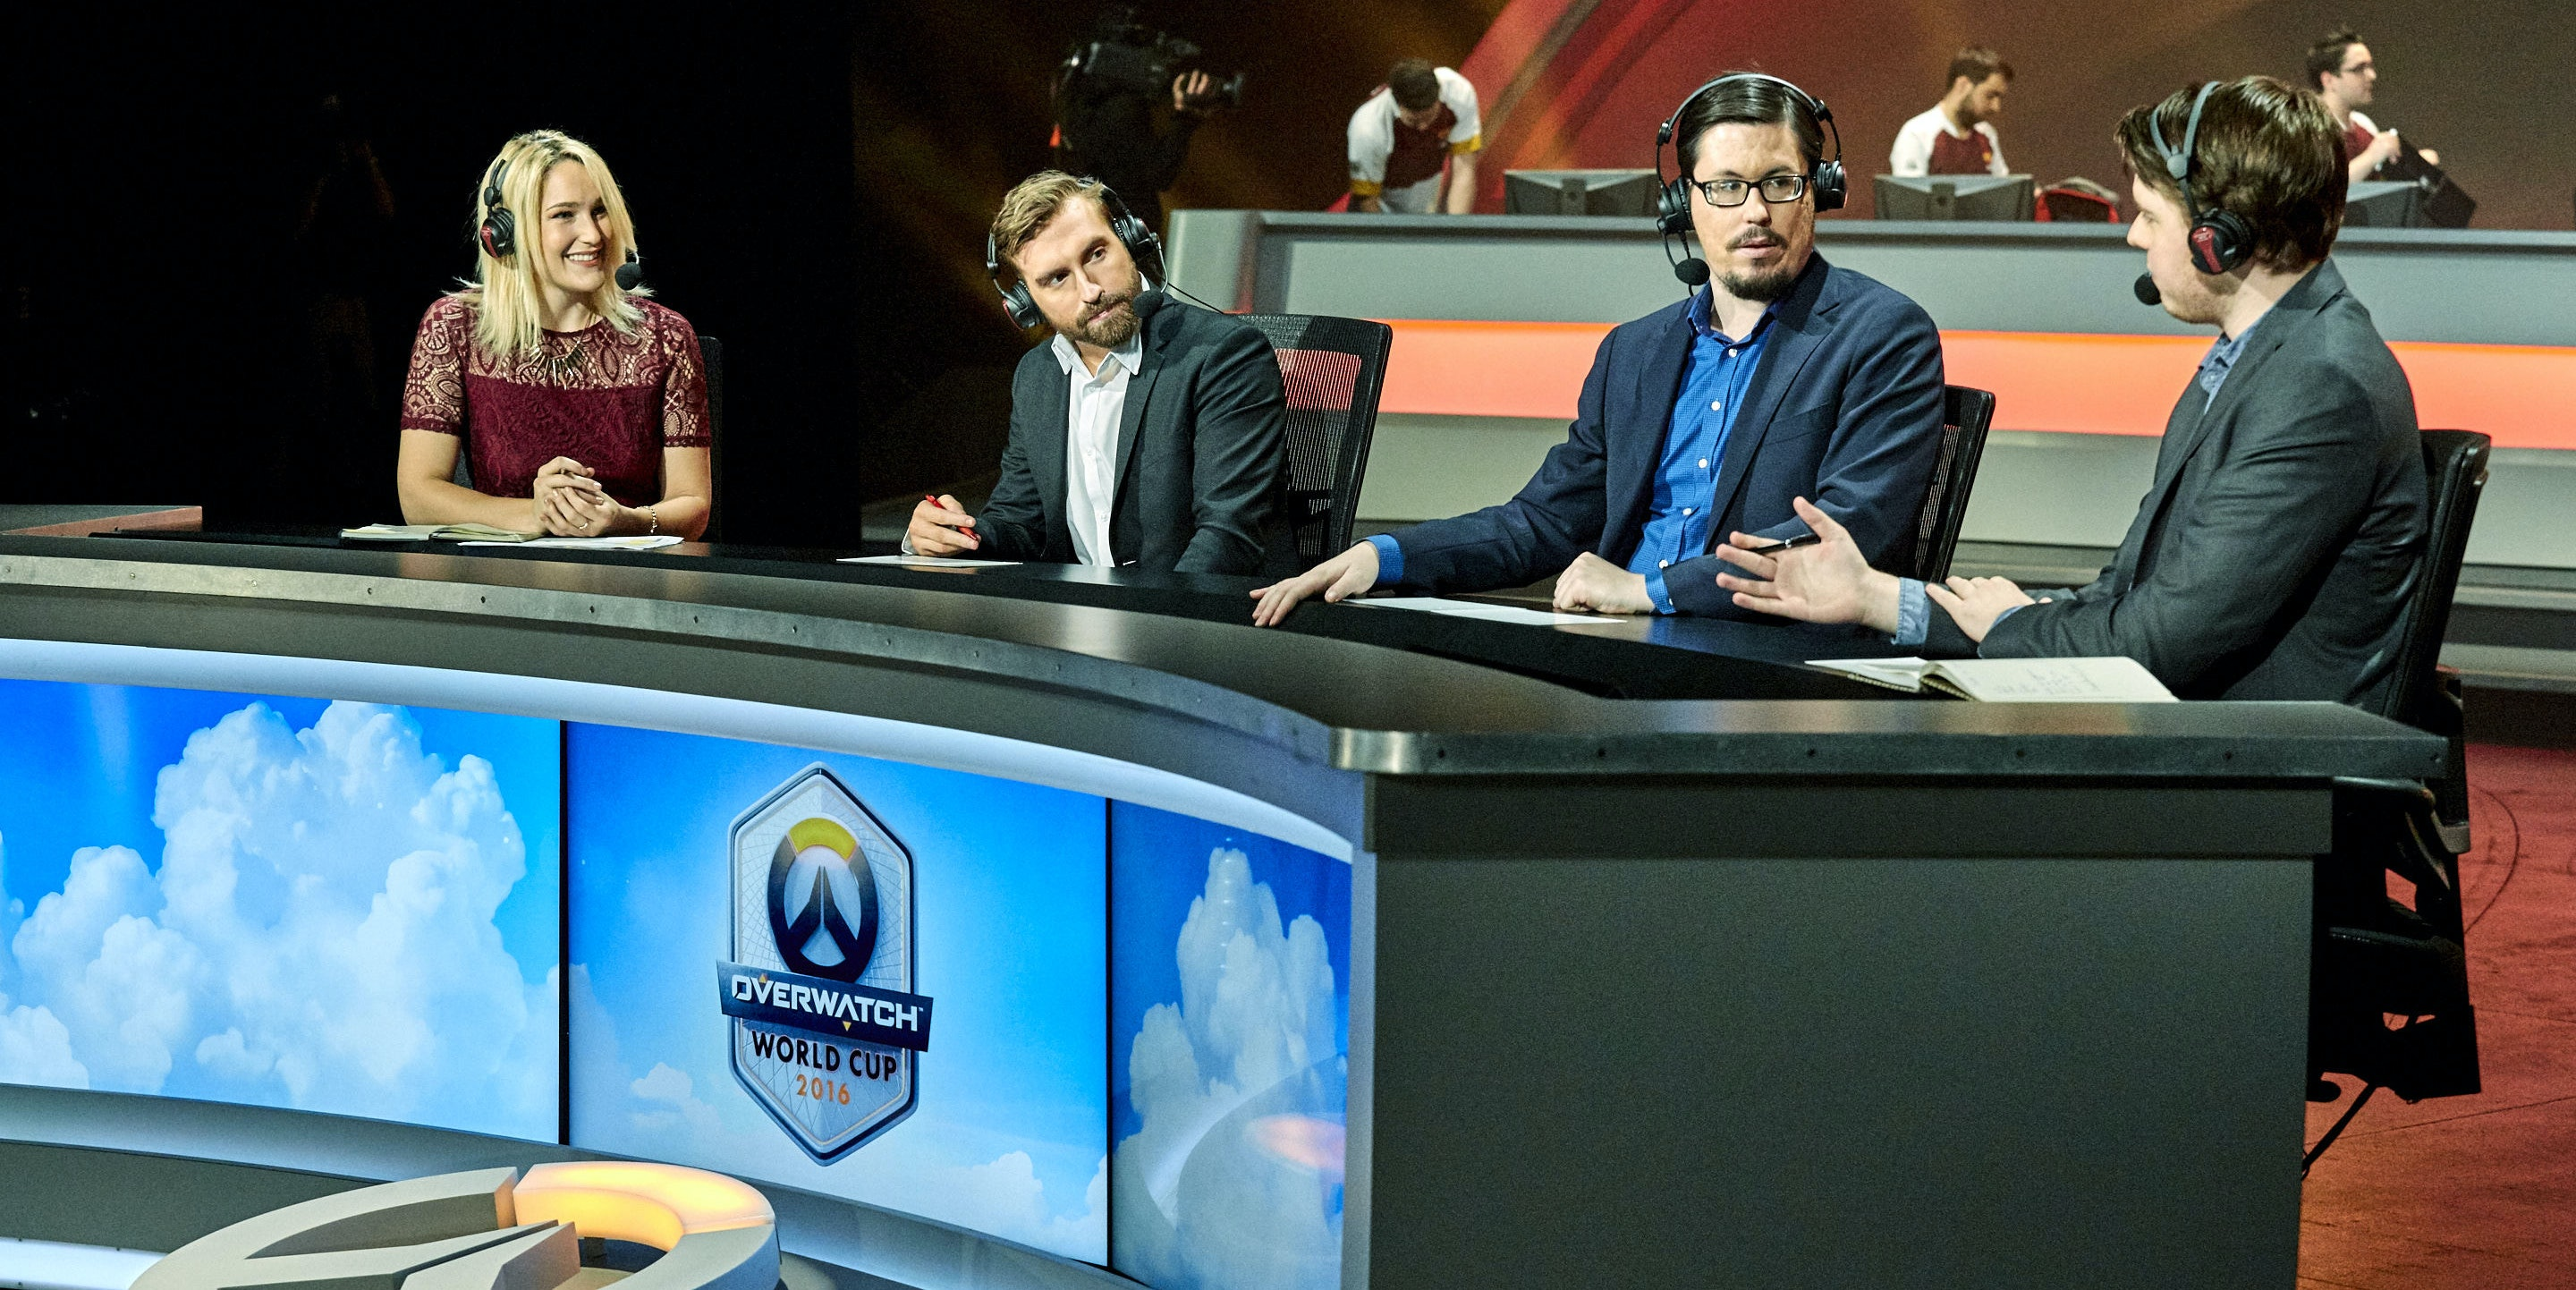 When we talk about esports, we're talking about a whole ecosystem.